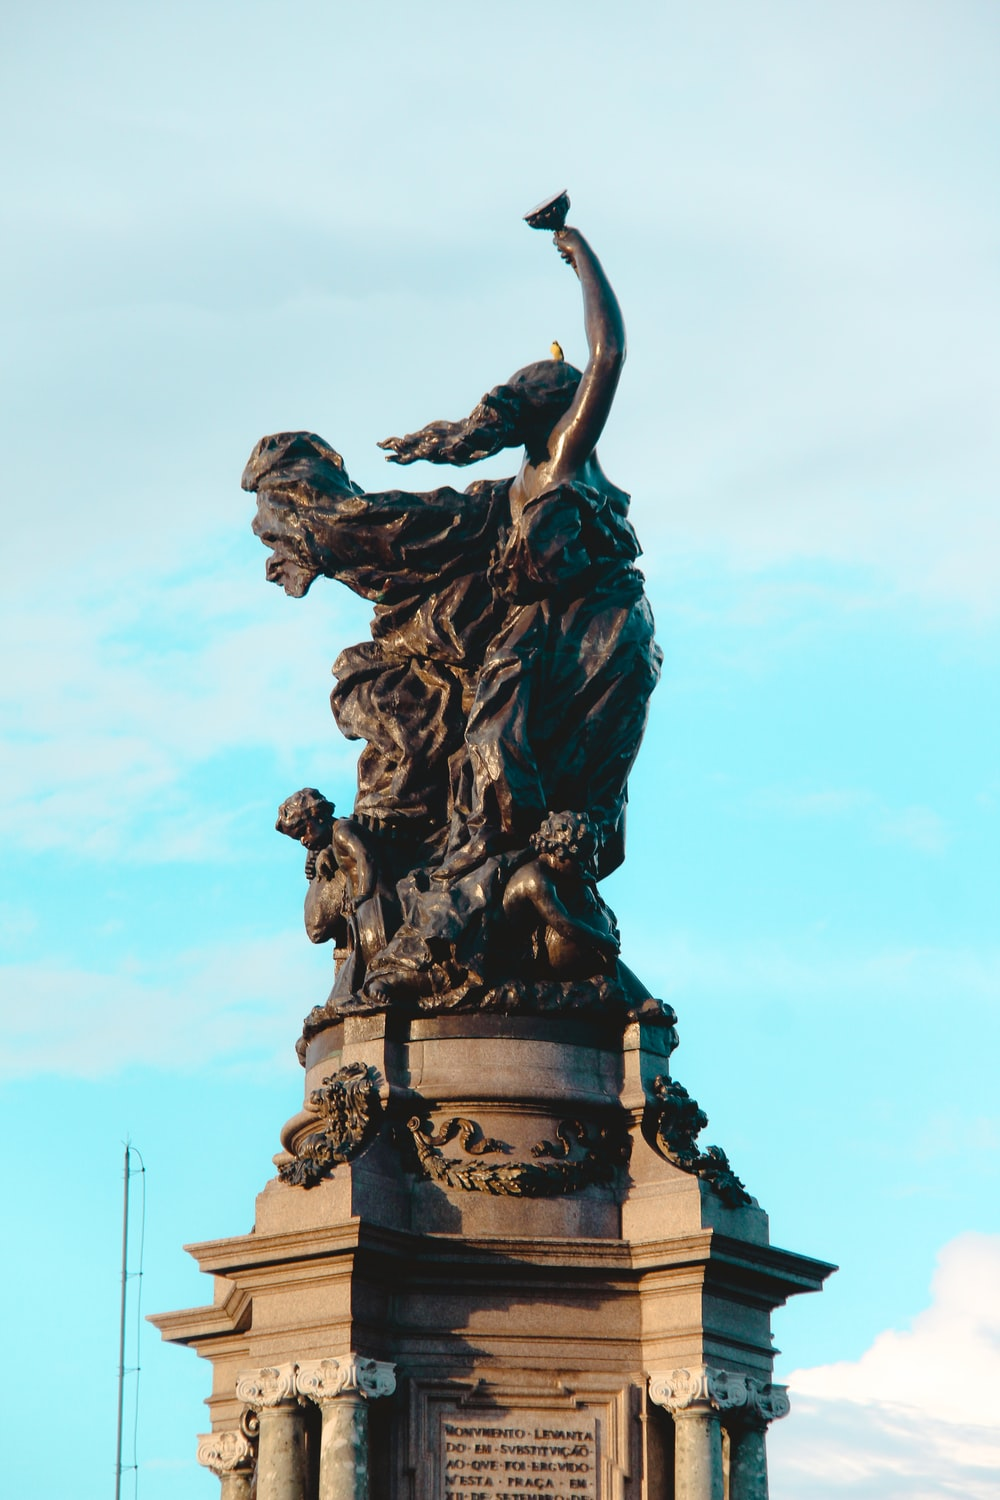 black statue of man with wings